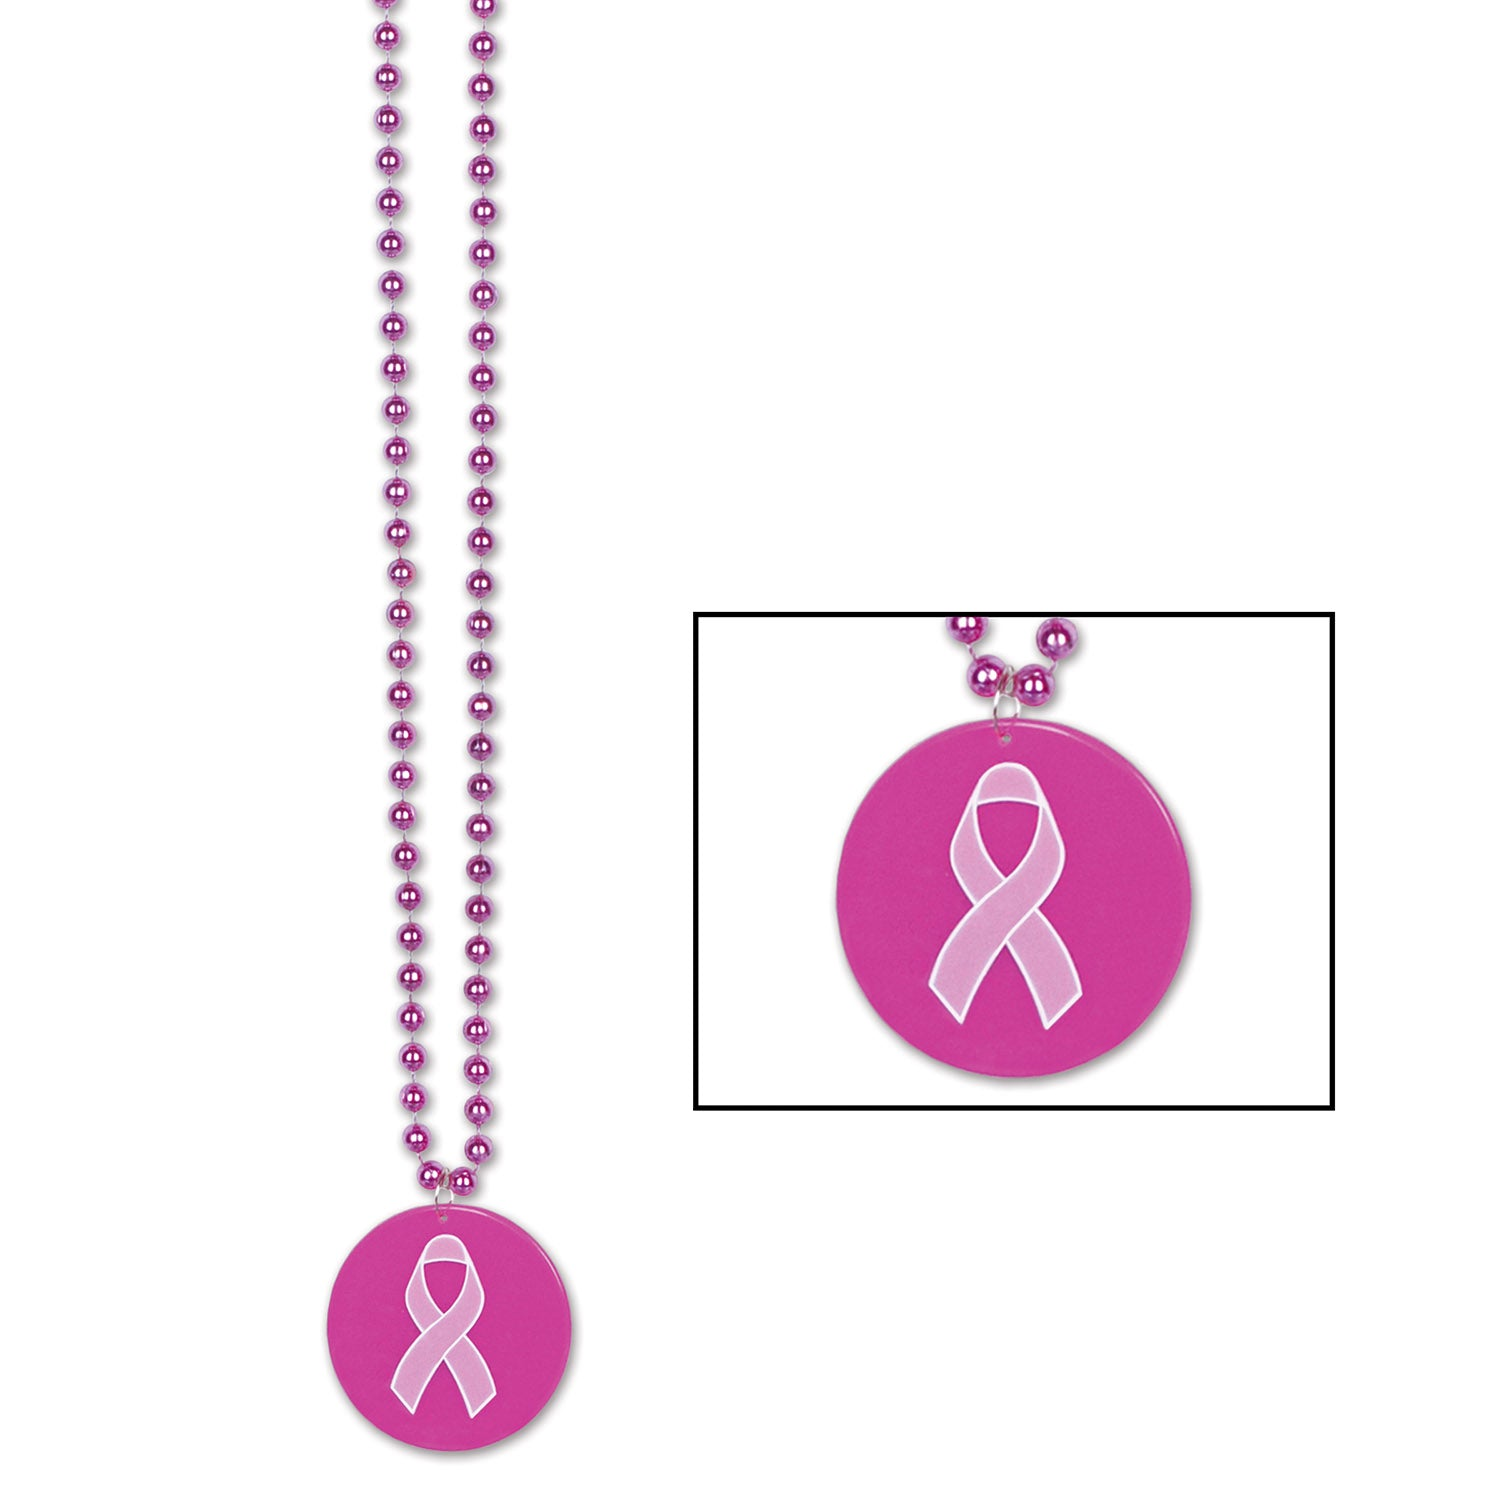 Beads w/Printed Pink Ribbon Medallion by Beistle - Pink Ribbon Theme Decorations